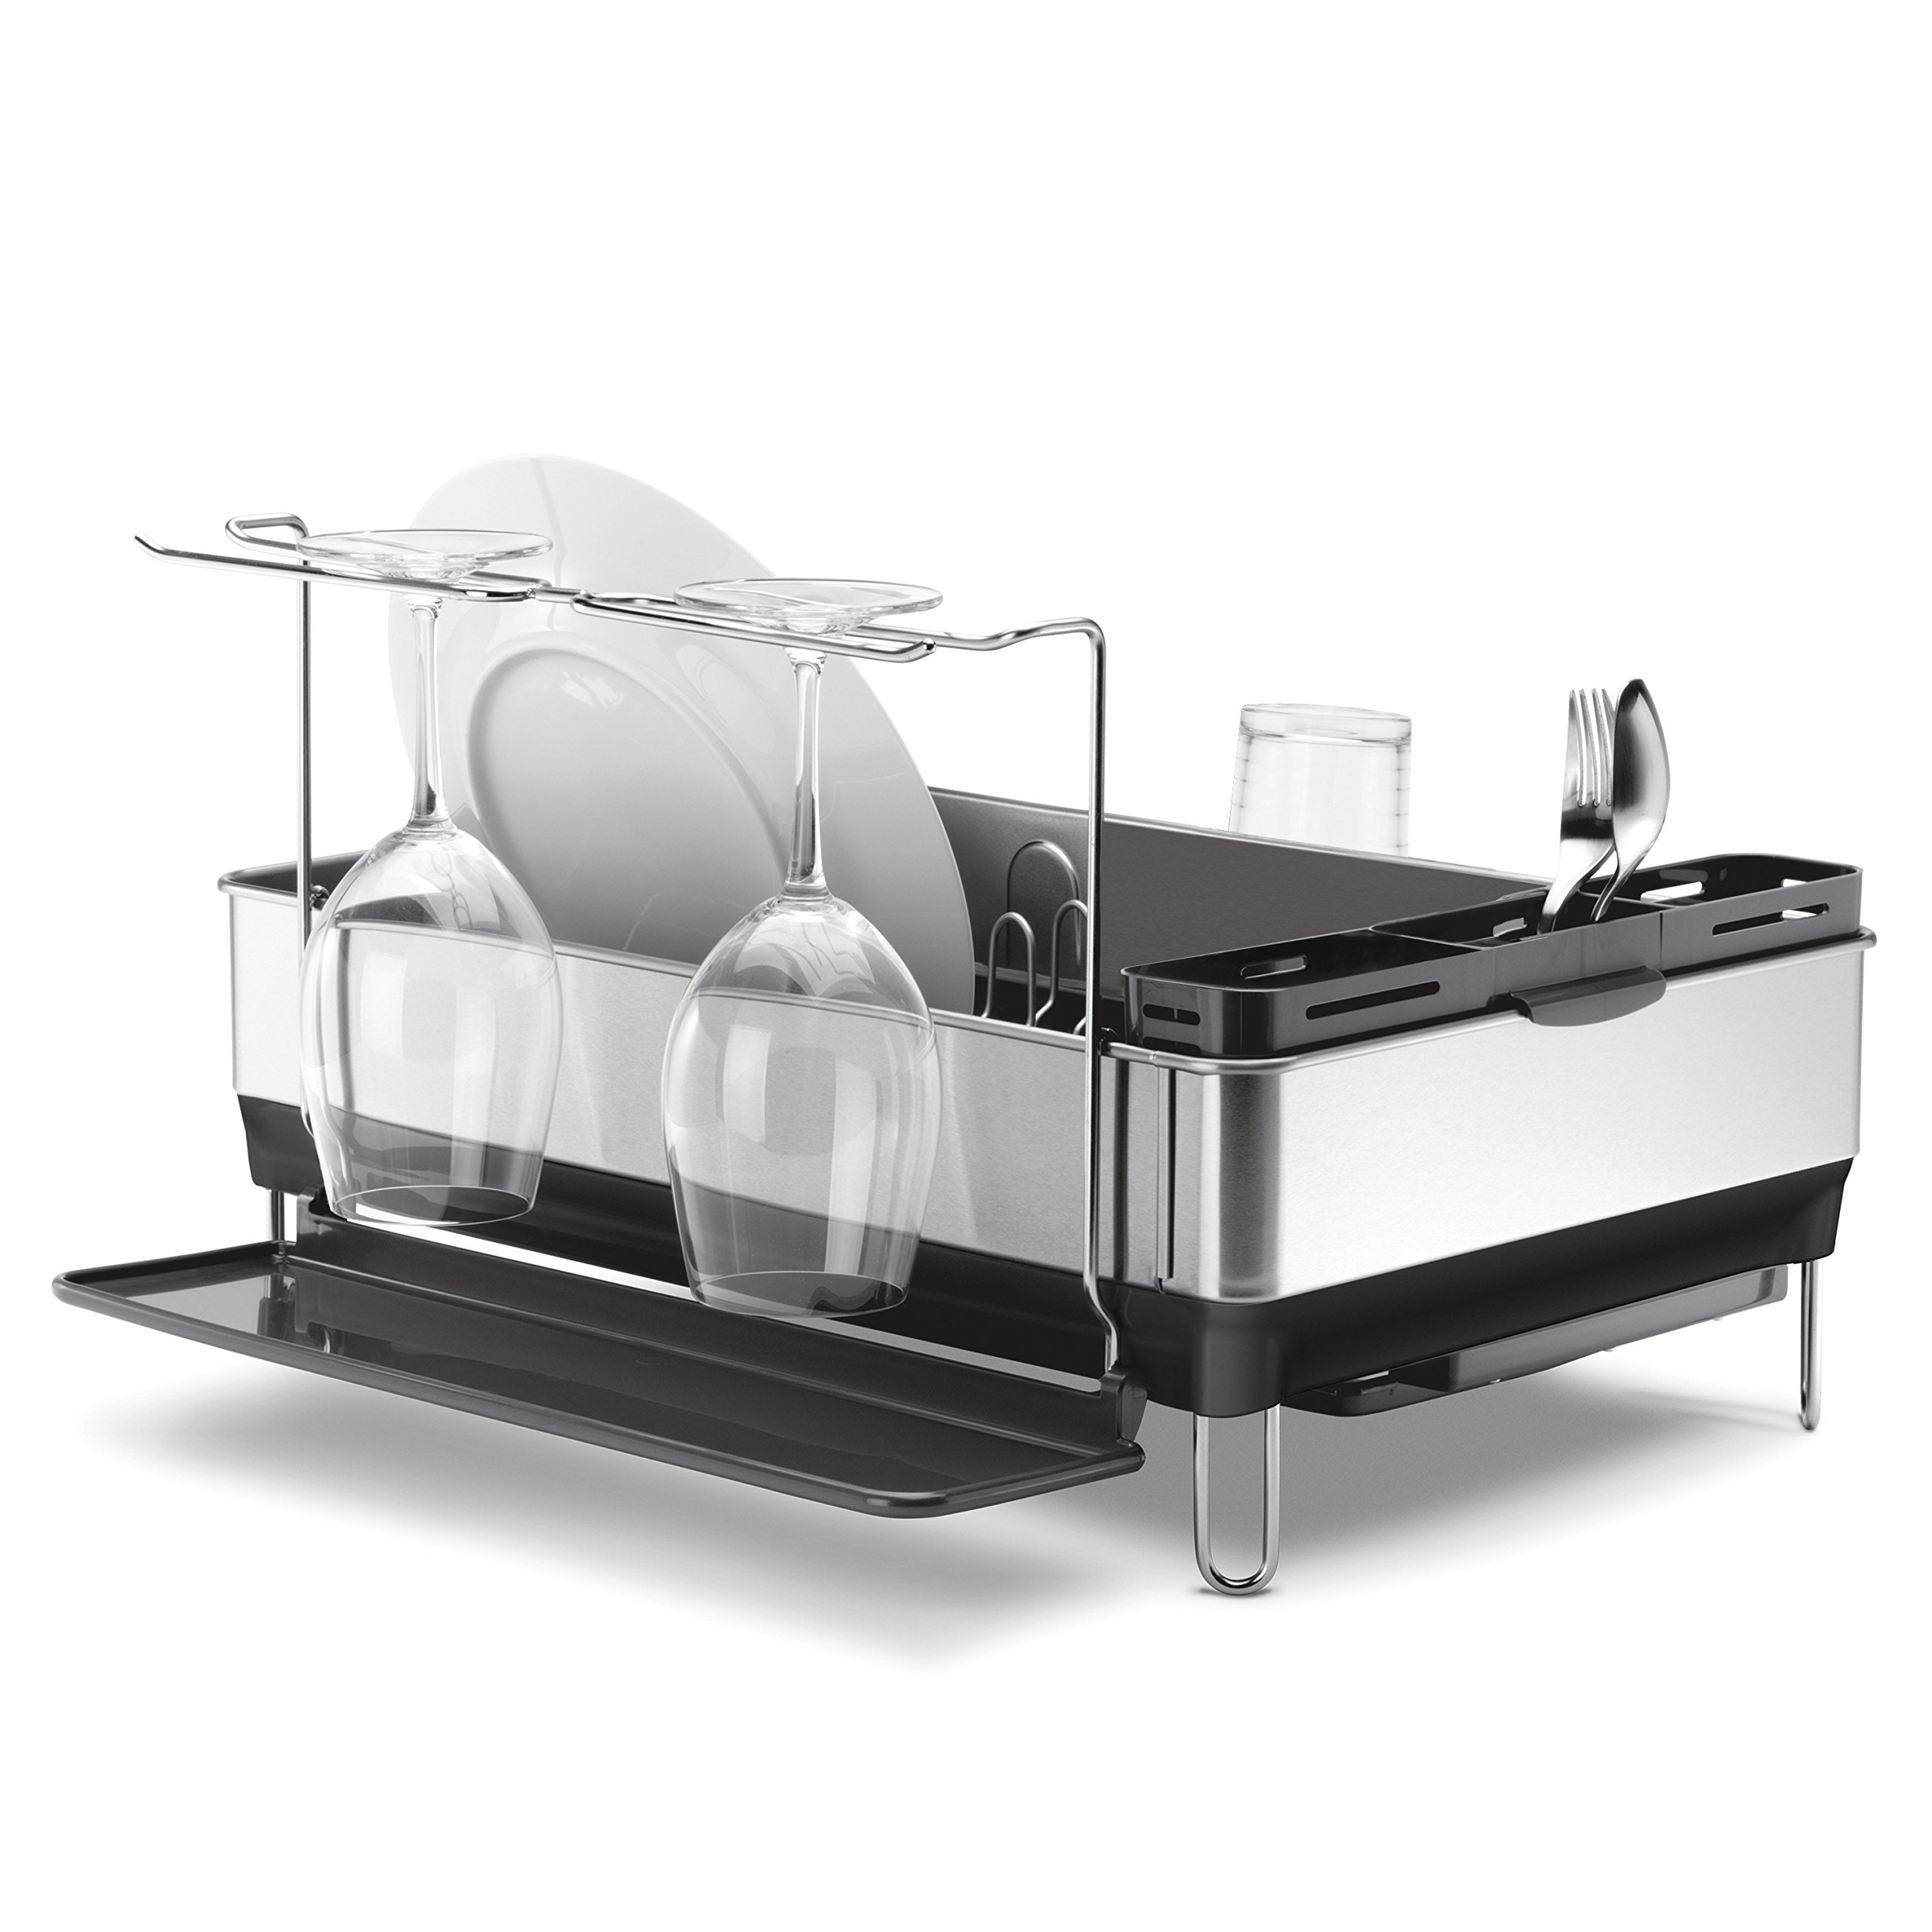 simplehuman Kitchen Steel Frame Dish Rack With Swivel Spout, Fingerprint-Proof Stainless Steel Frame, Grey Plastic by simplehuman (Image #3)